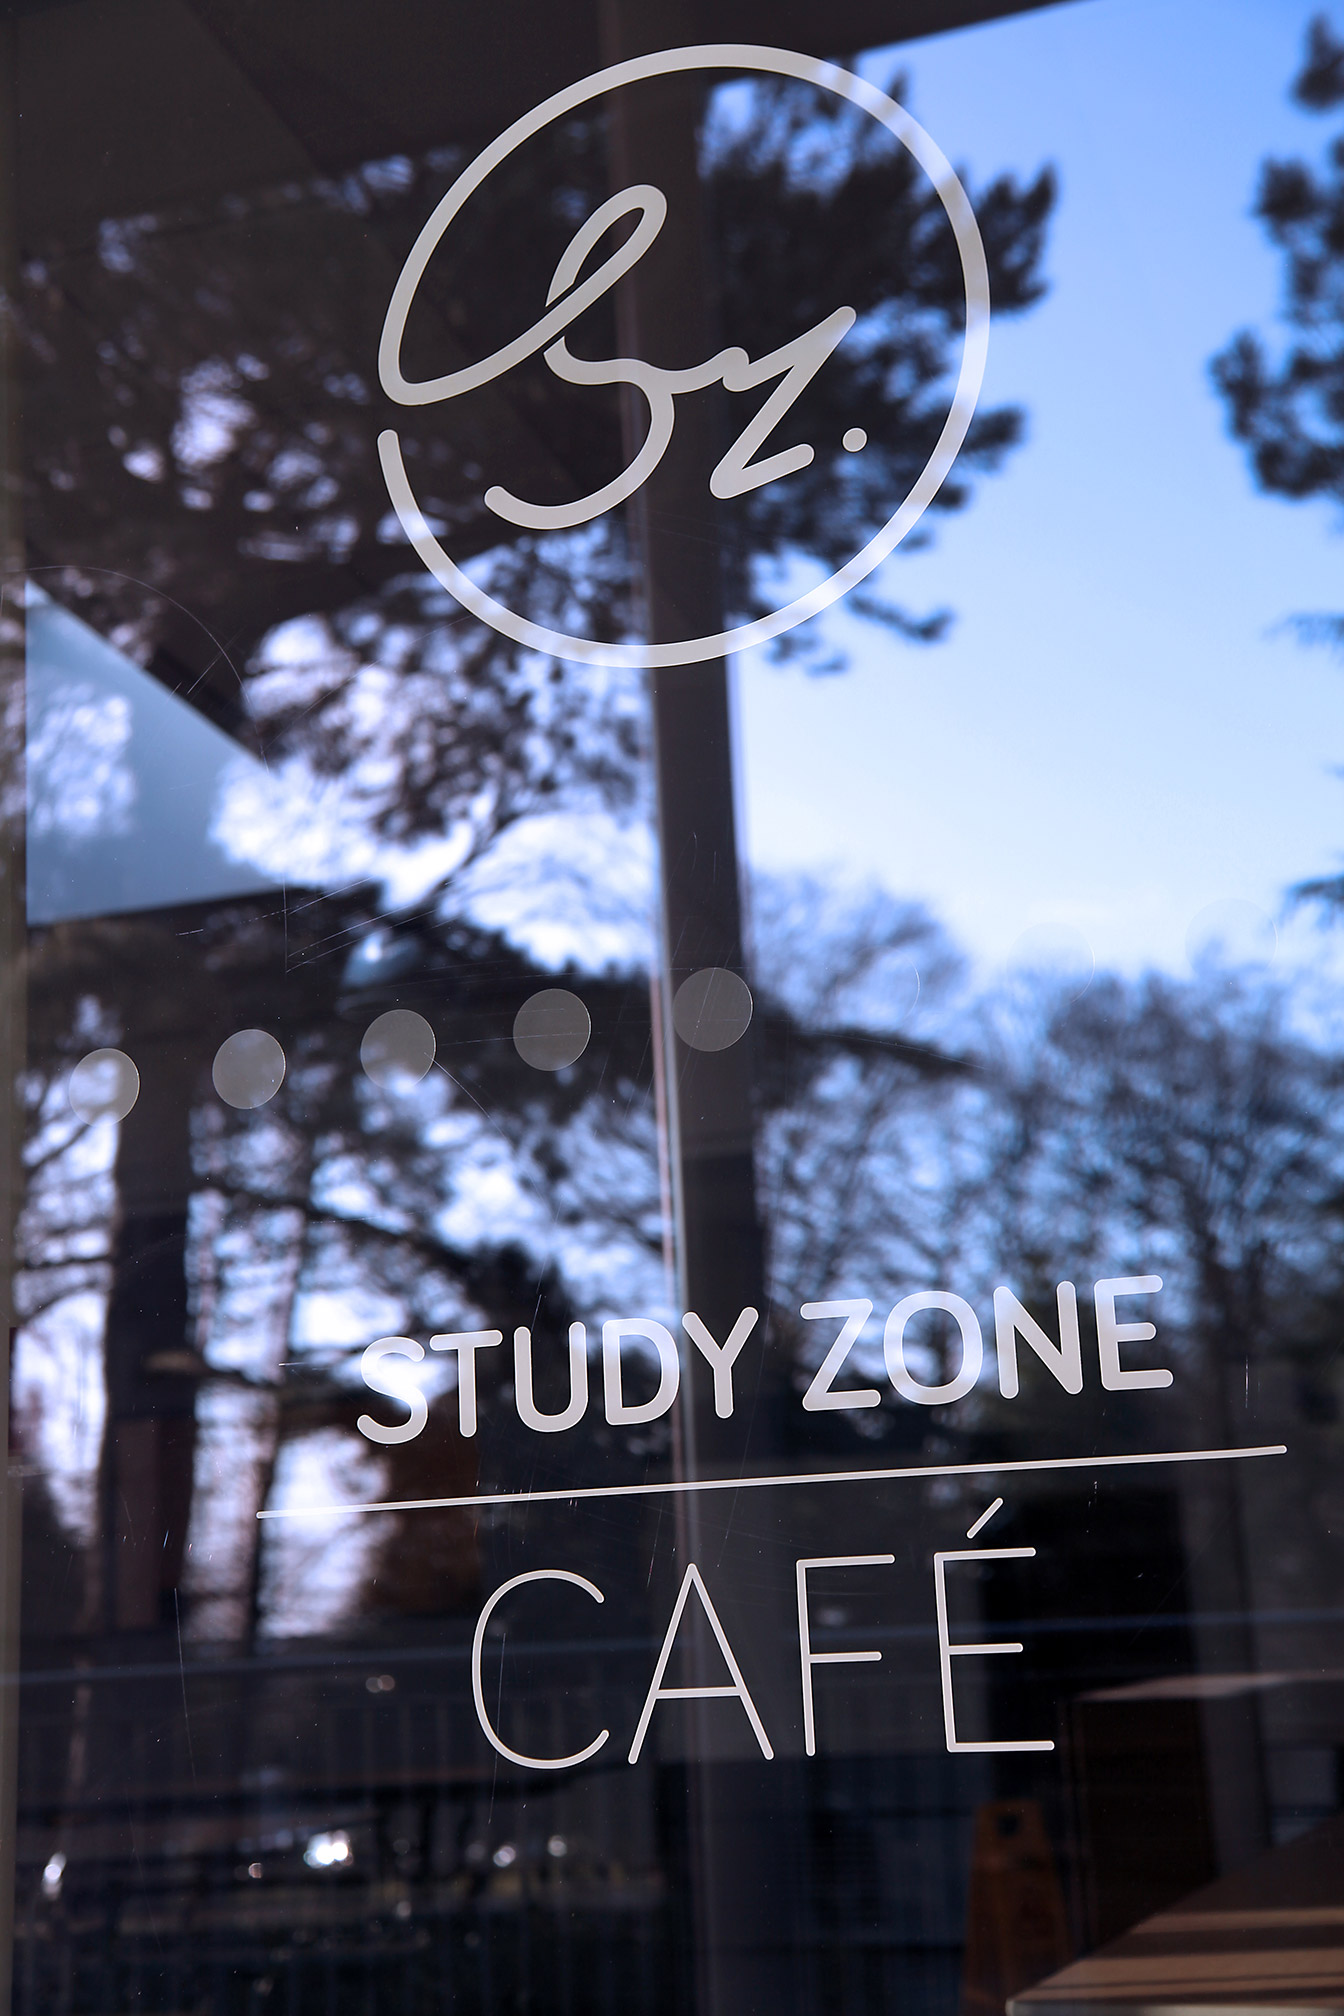 The Study Zone Cafe is branded with large vinyl window decals.